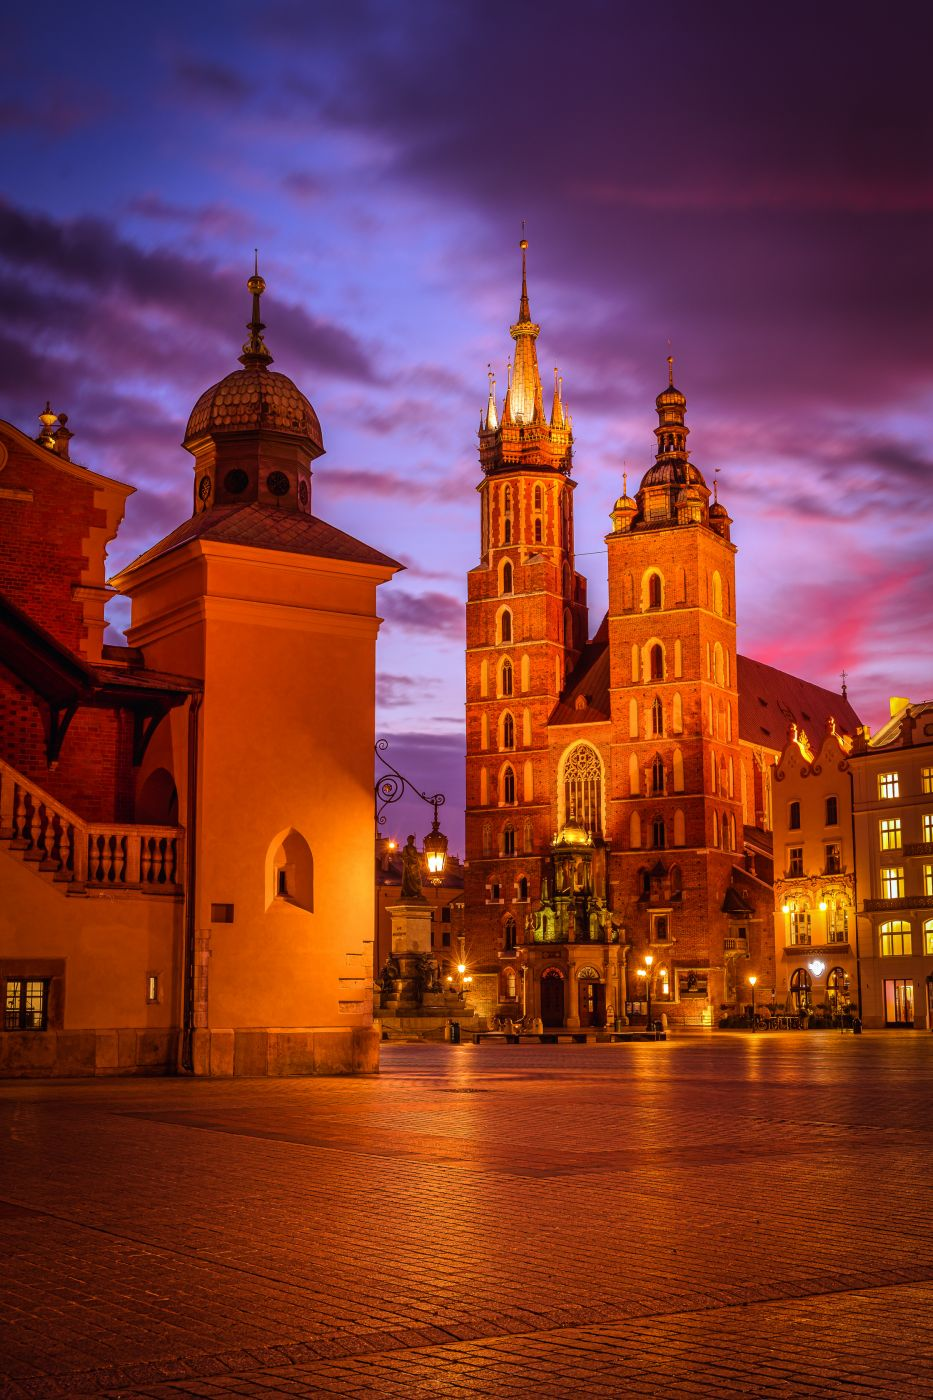 St. Mary's Basilica and Cloth Hall, Kraków, Poland